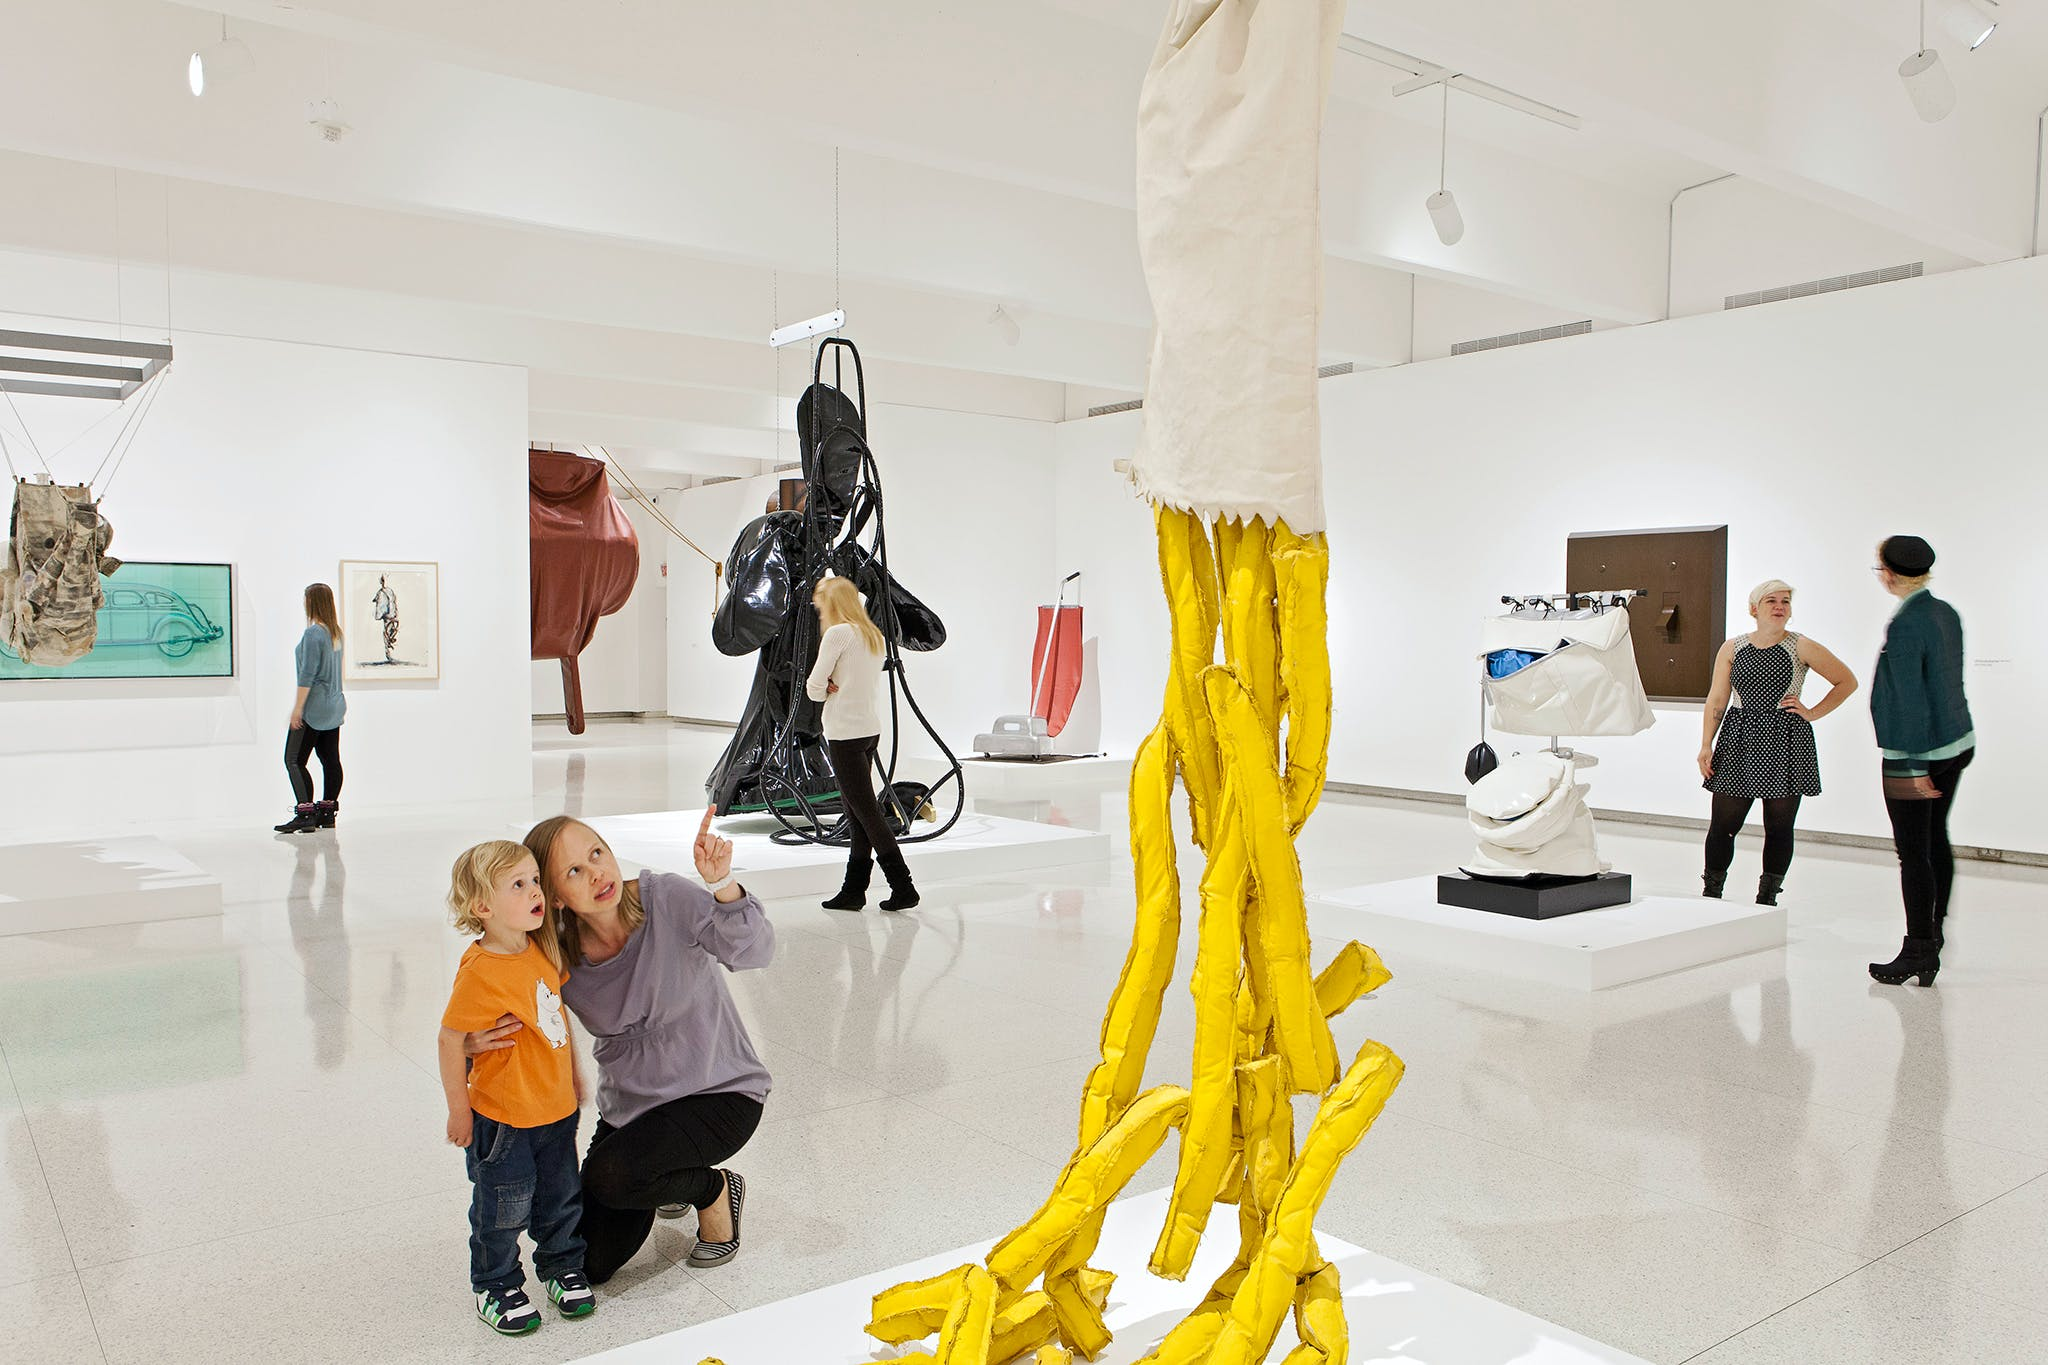 Installation view of the exhibition Claes Oldenburg: The Sixties, 2013